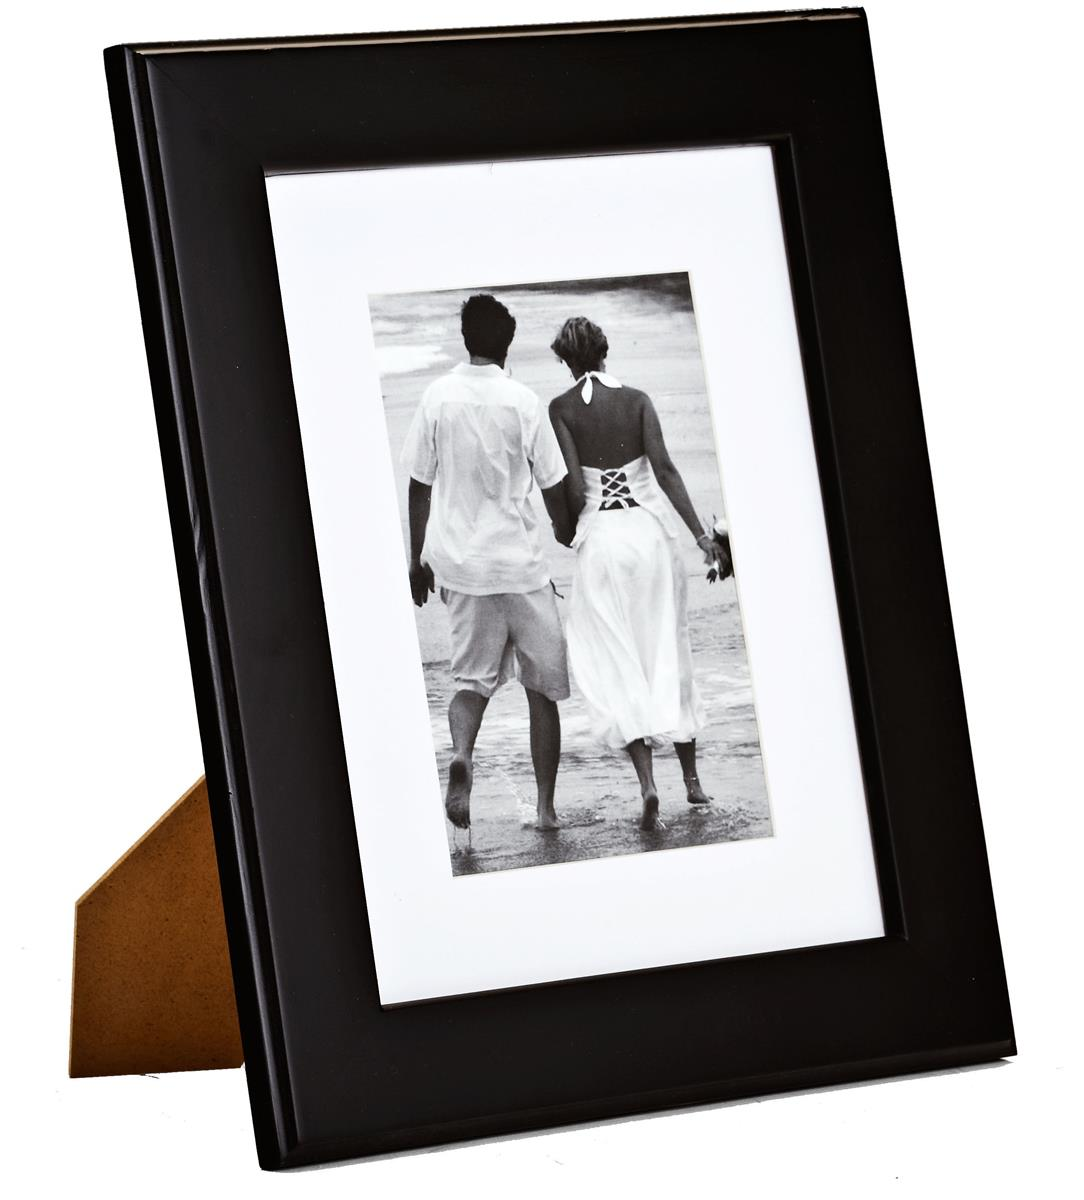 8x10 Classic Black Frame With Matting Wood Counter Wall